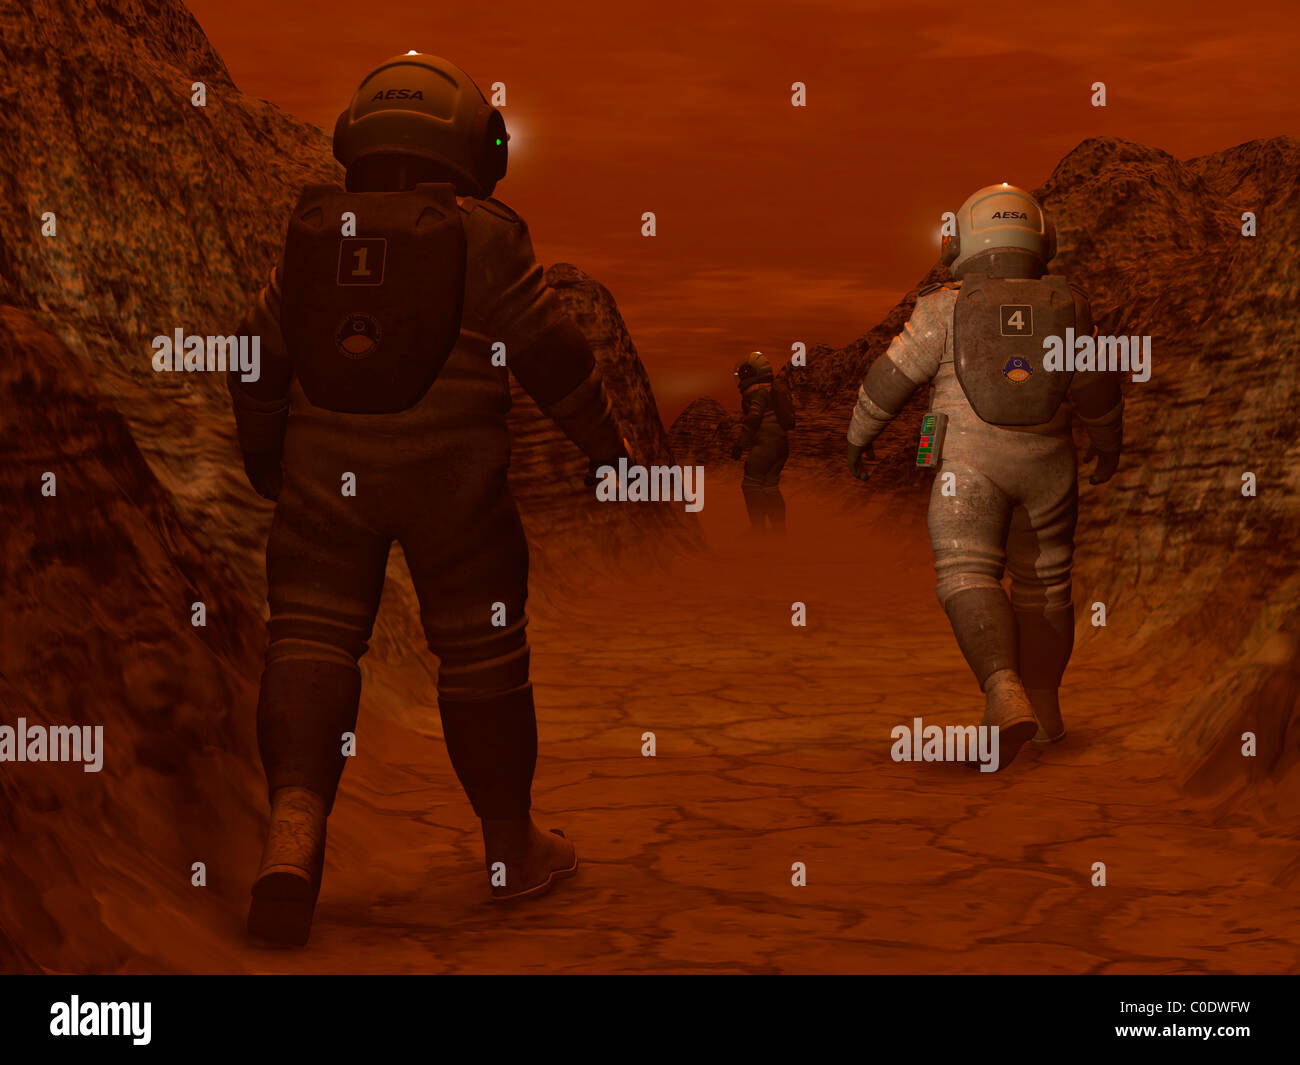 Artist's concept of astronauts exploring a dry gully on Saturn's moon Titan. - Stock Image